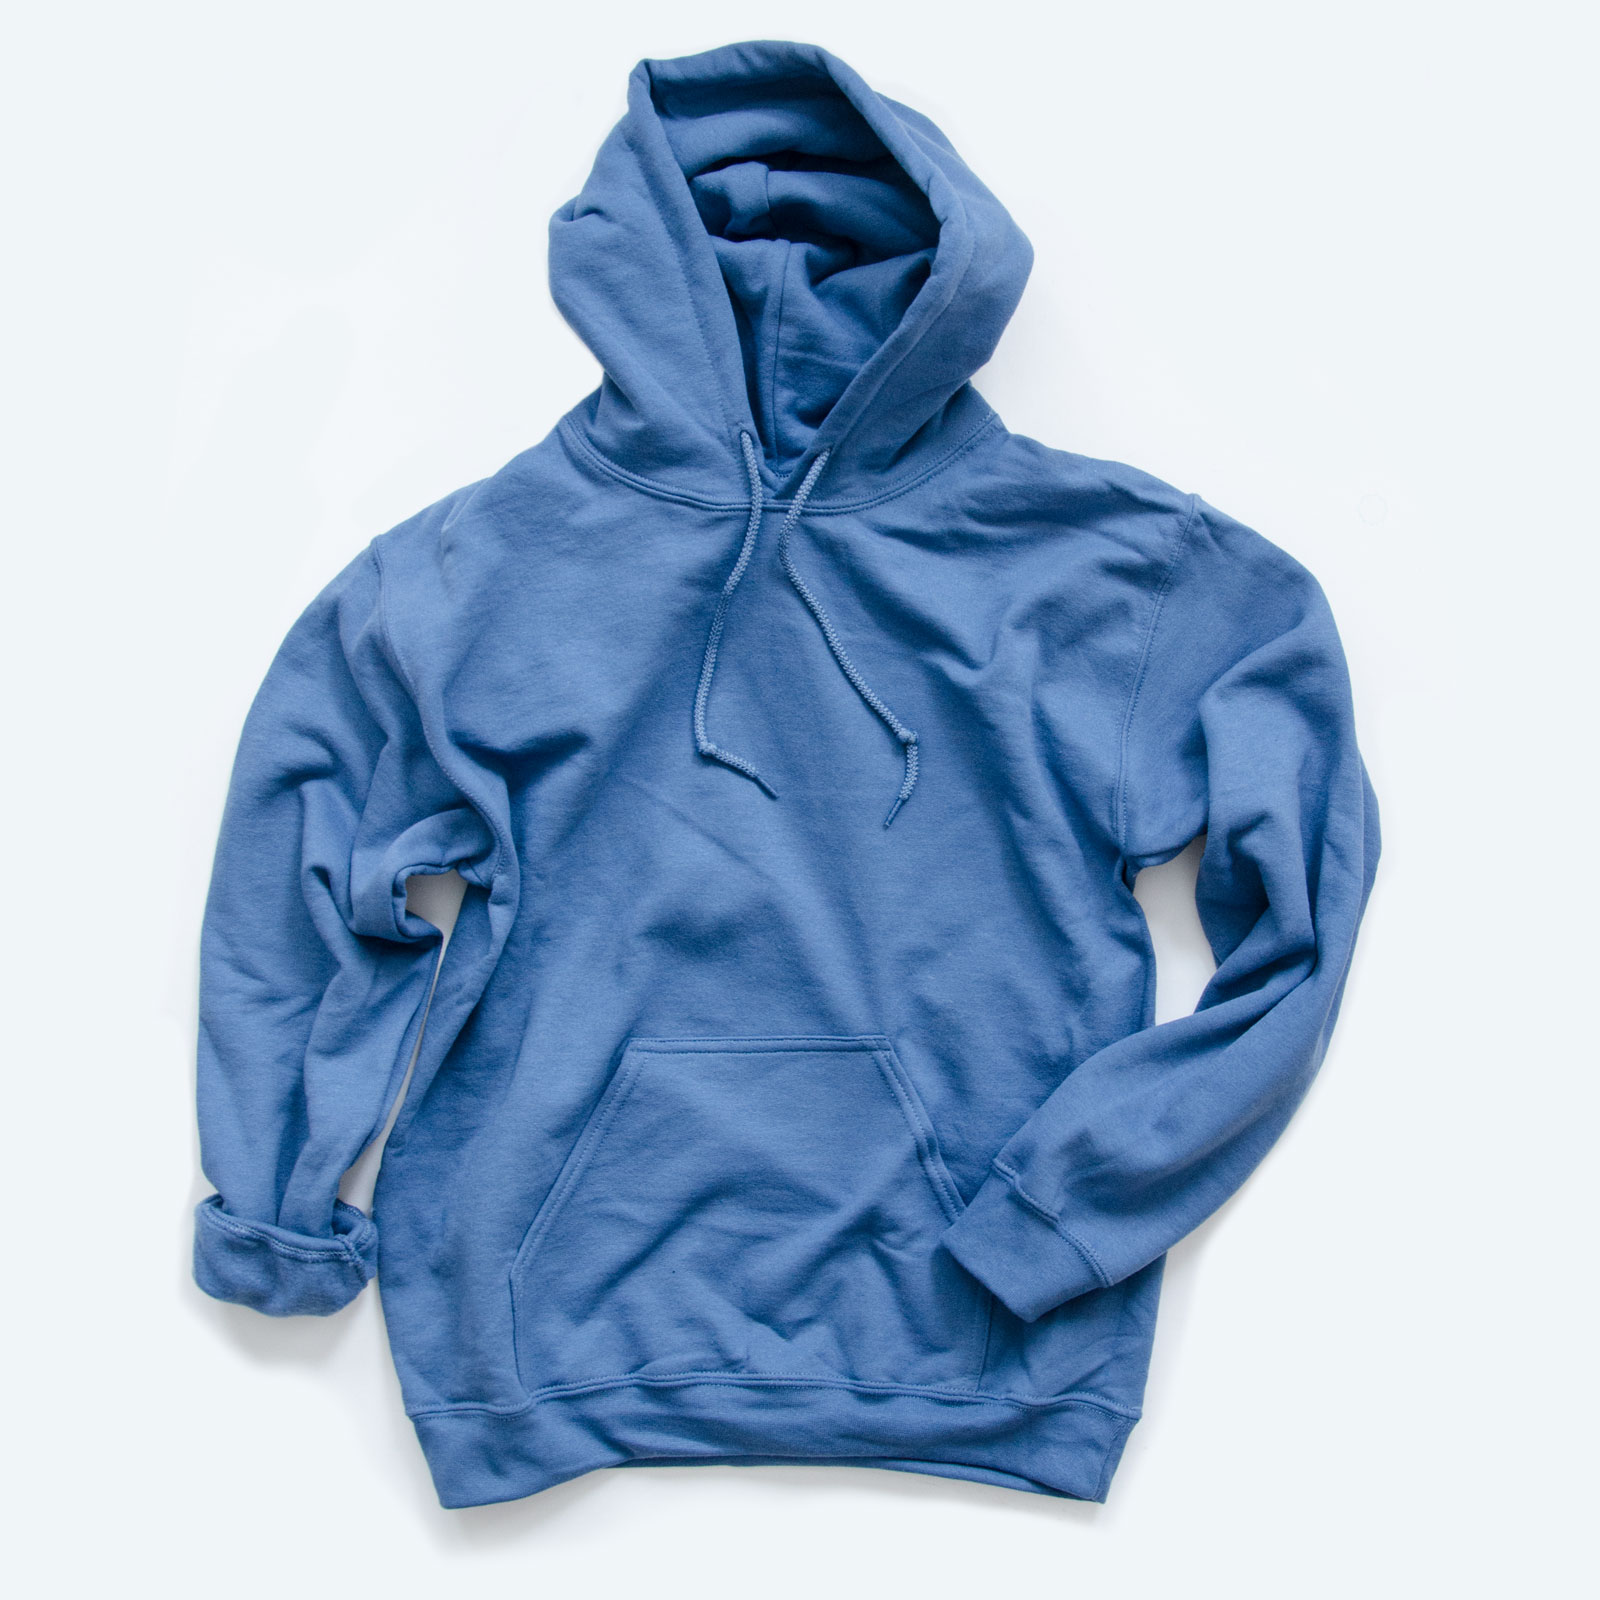 Selling a pullover hoodie online that comes in a variety of colors that everyone will love!